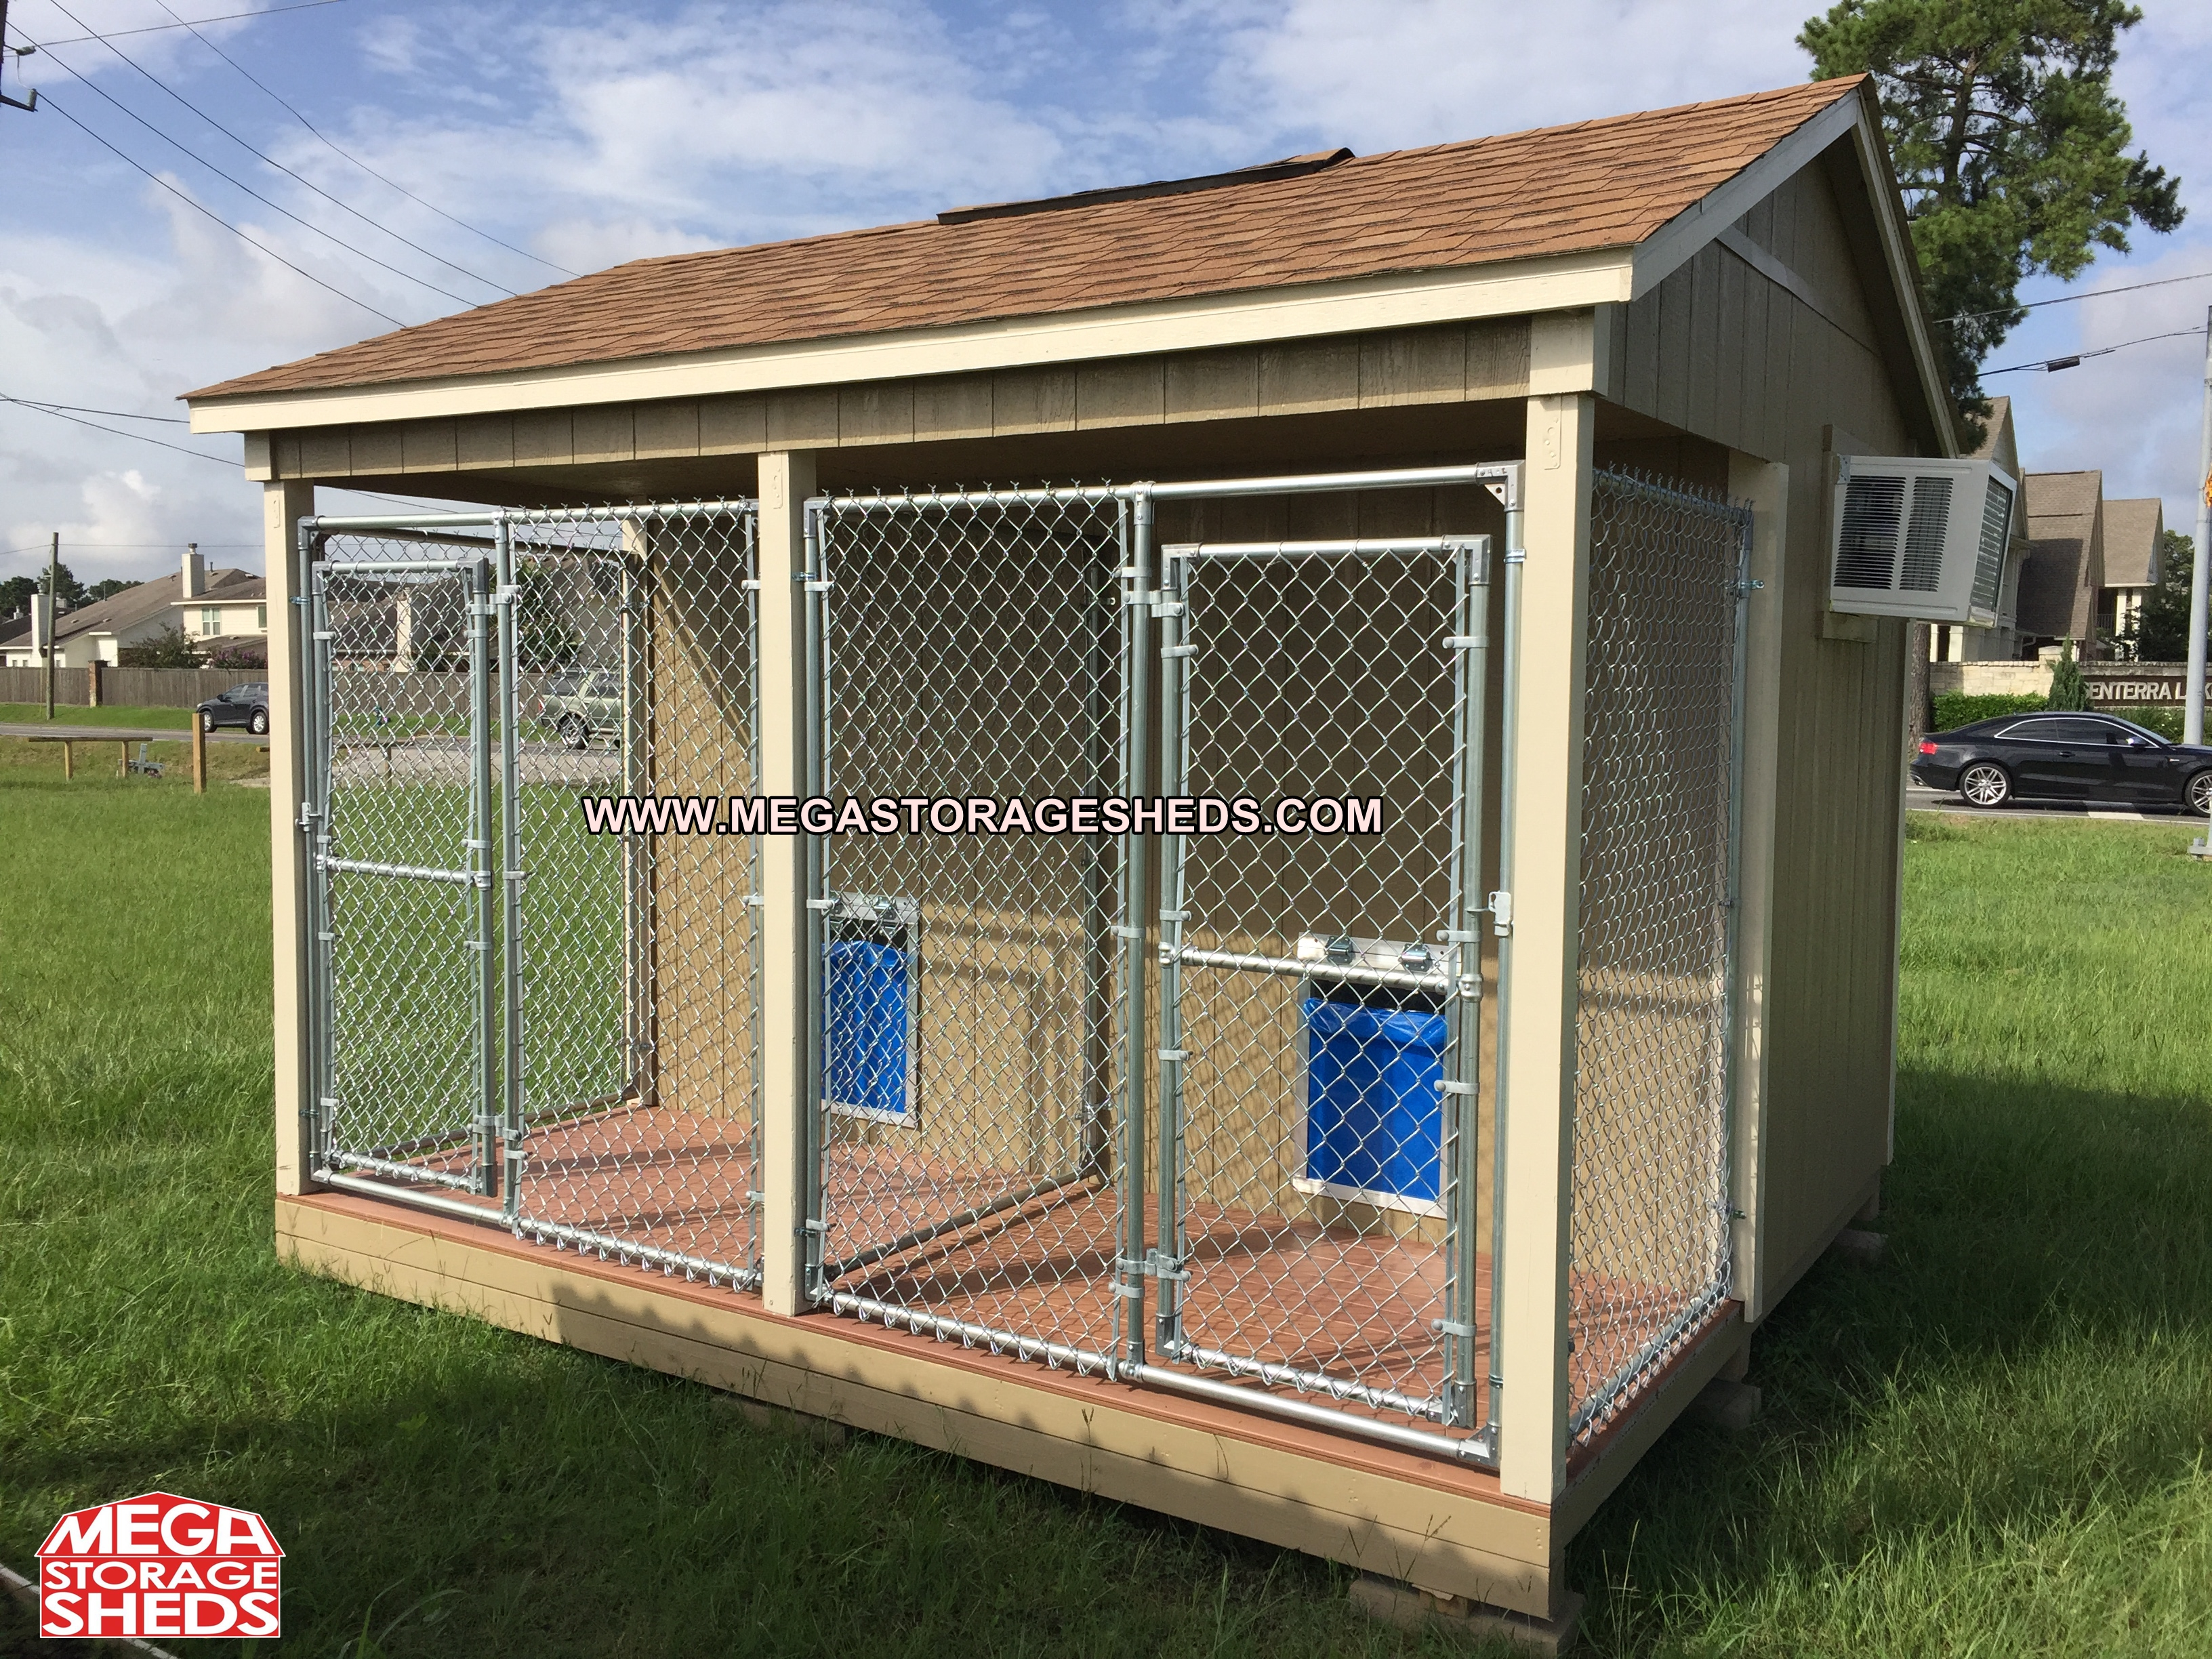 Dog kennel mega storage sheds for Outdoor dog kennel kits